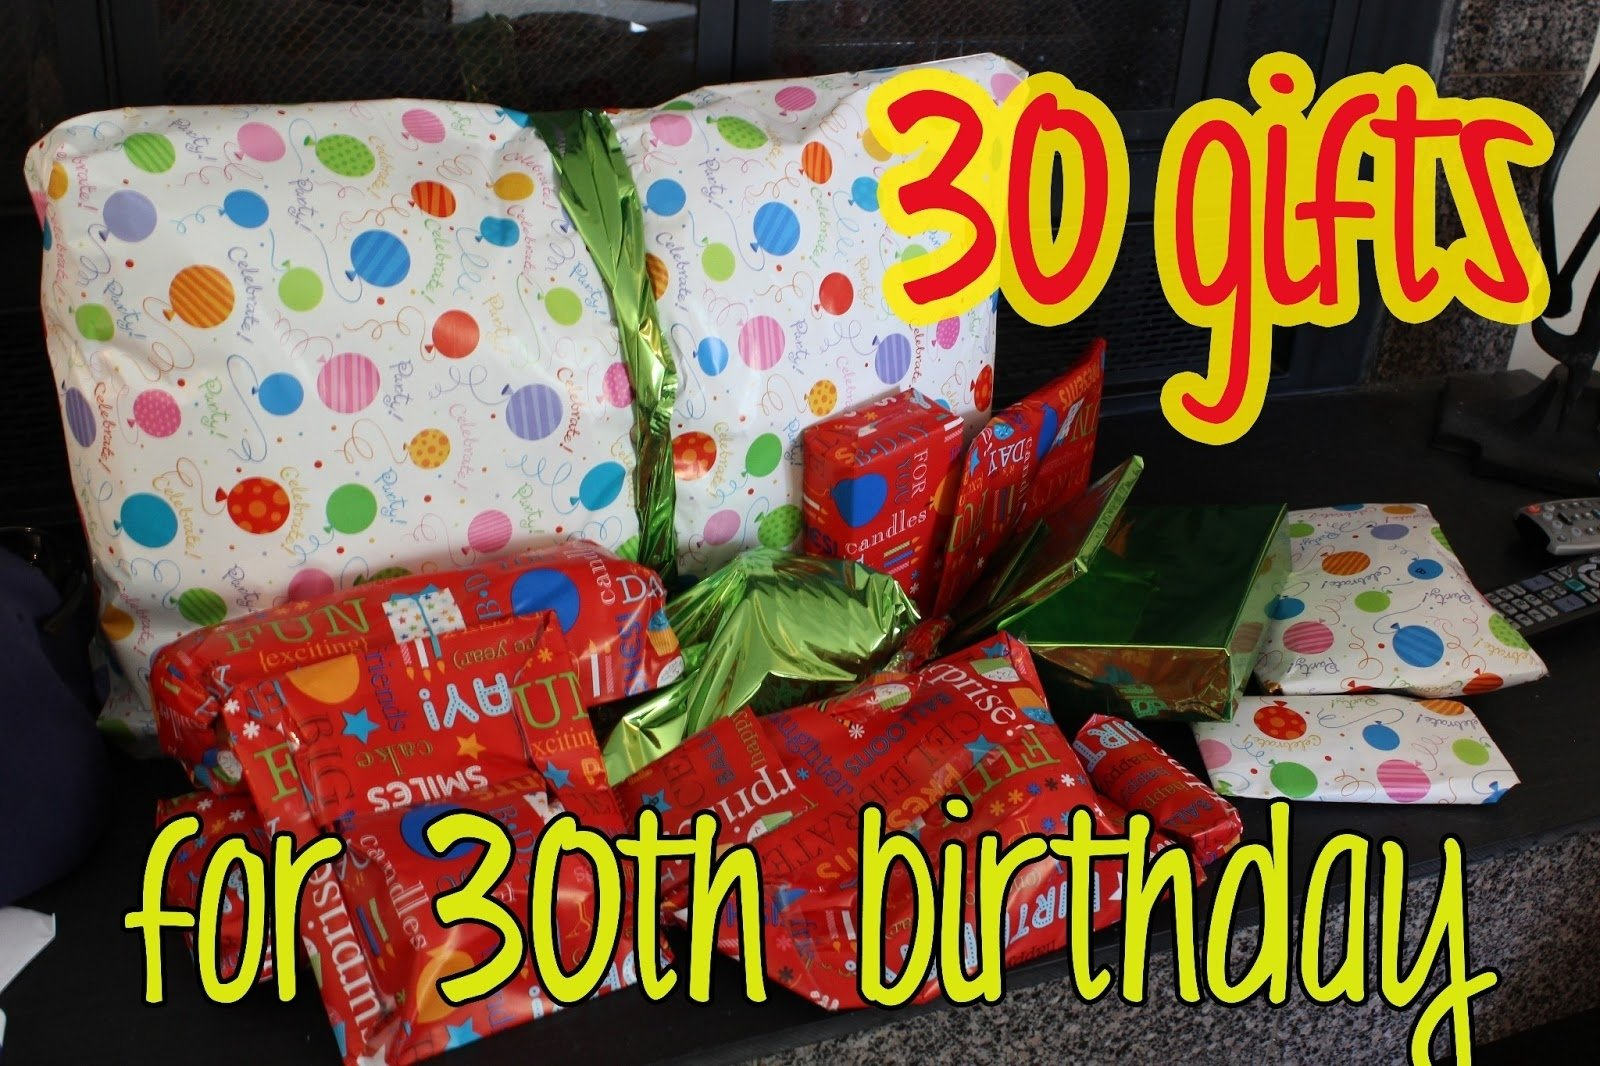 10 Fantastic Ideas For 30Th Birthday For Her love elizabethany gift idea 30 gifts for 30th birthday 10